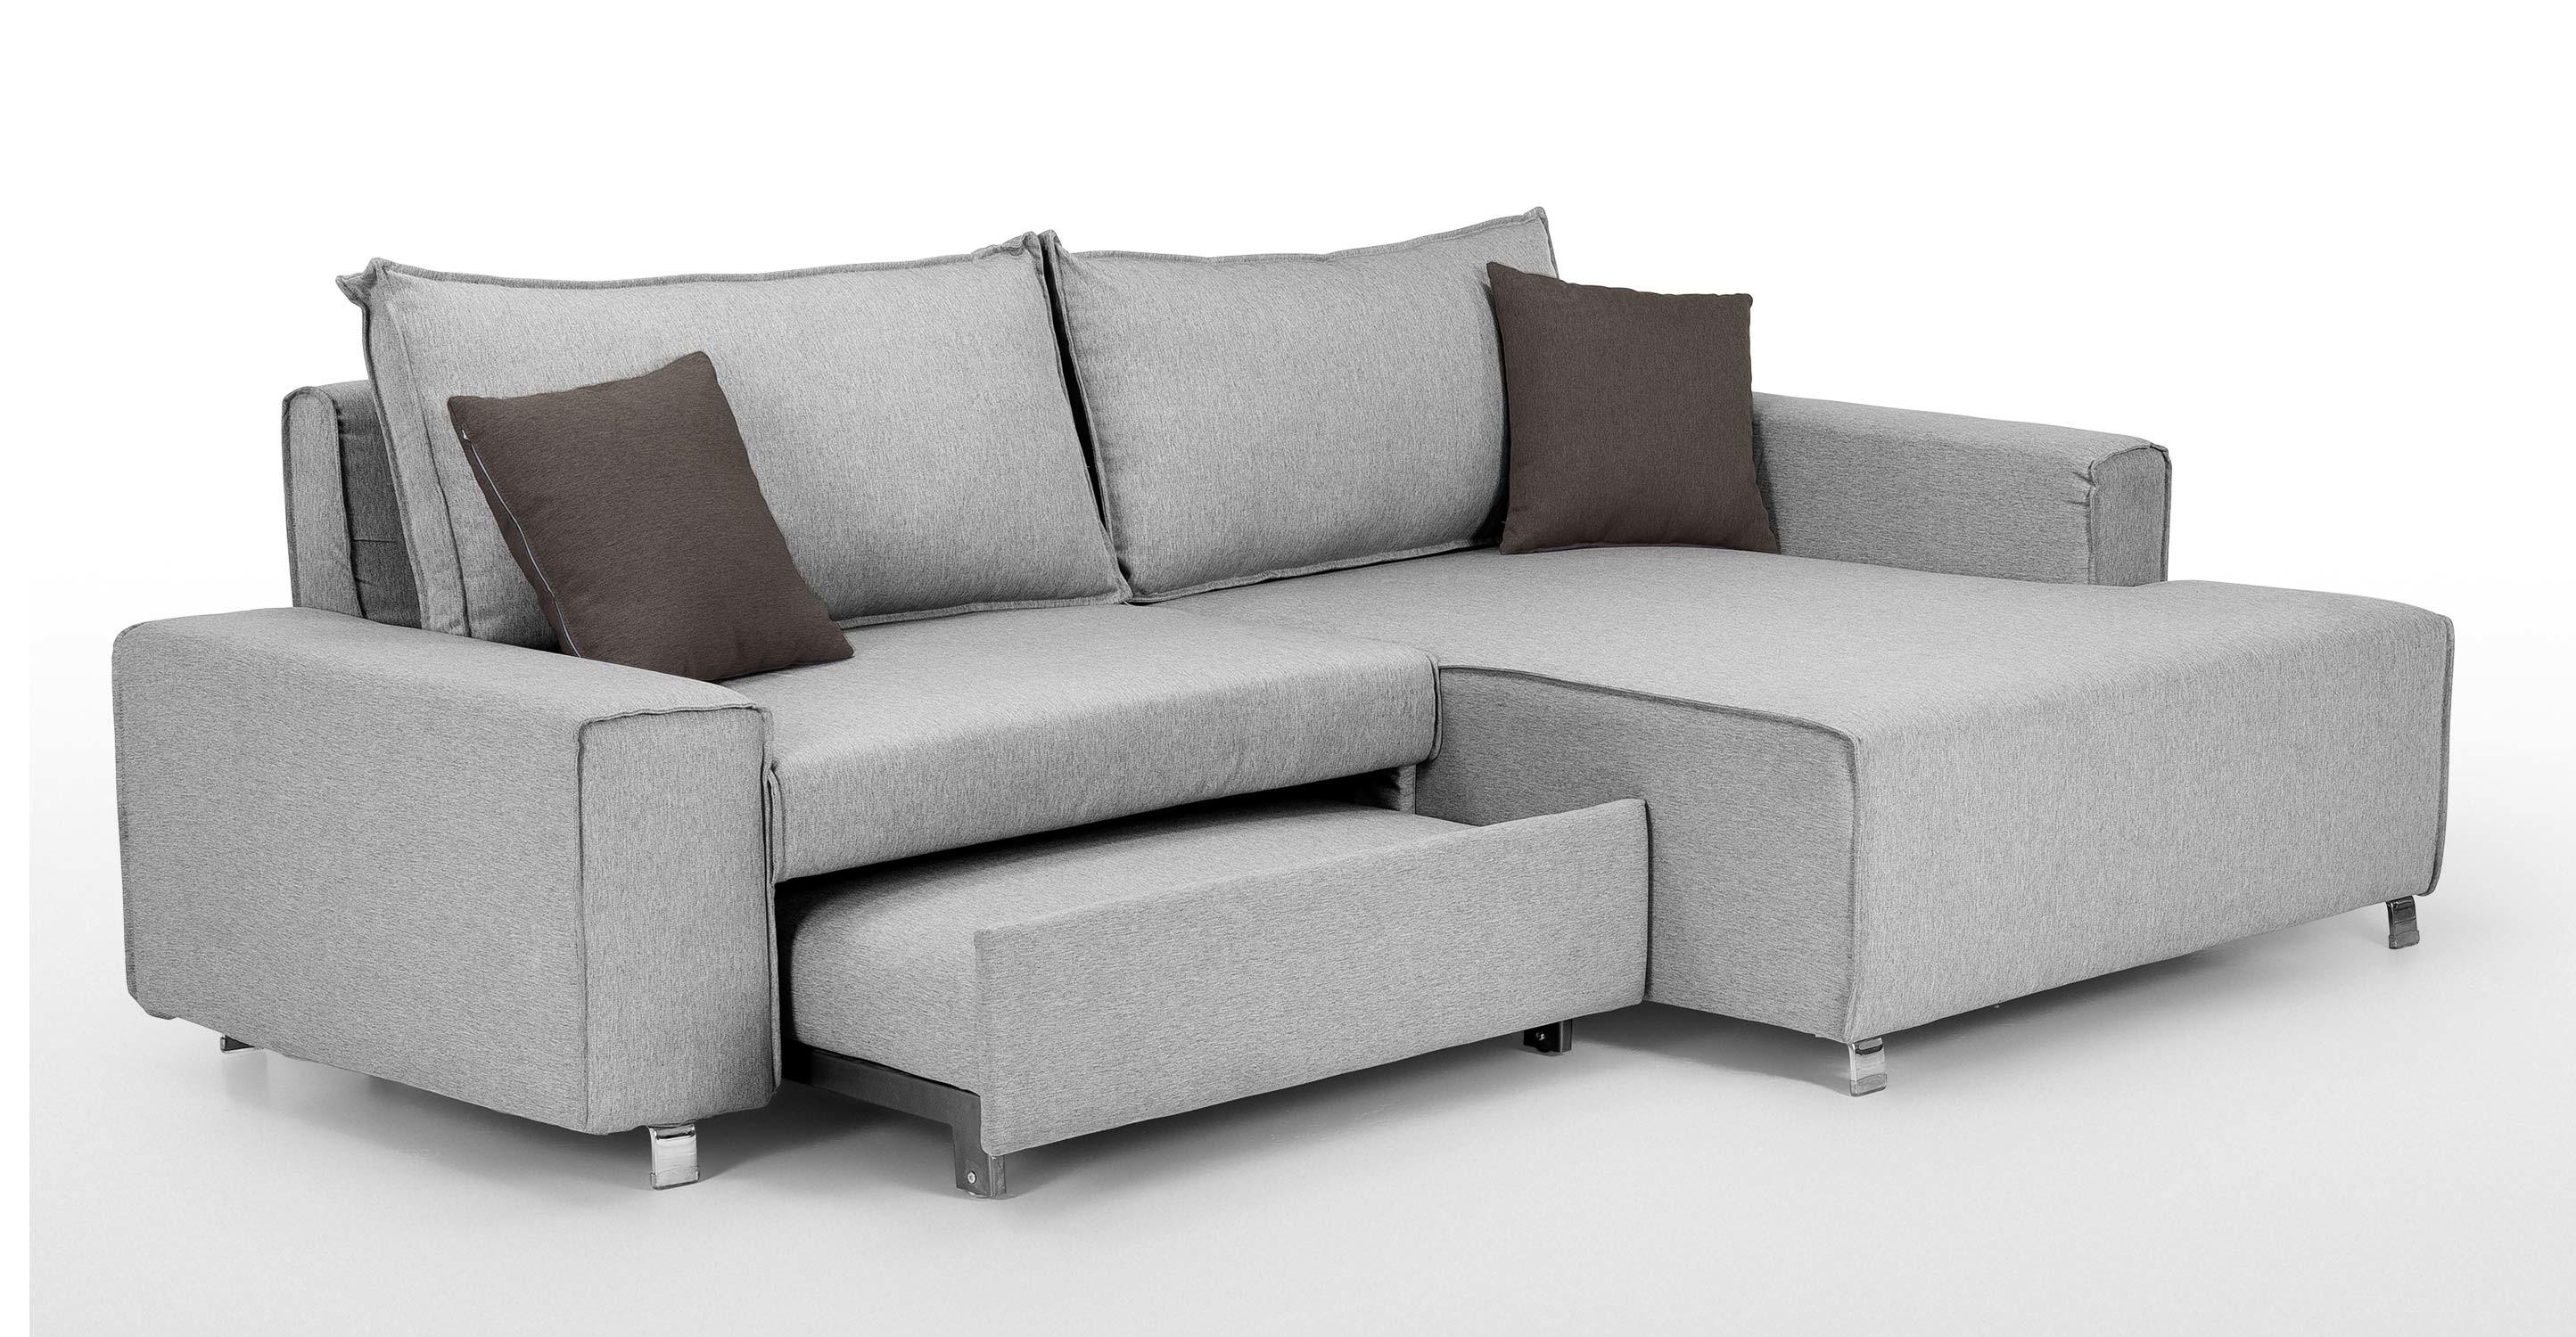 Small Corner Sofa For Bedroom | Tehranmix Decoration Within Corner Sofa Beds (View 8 of 20)